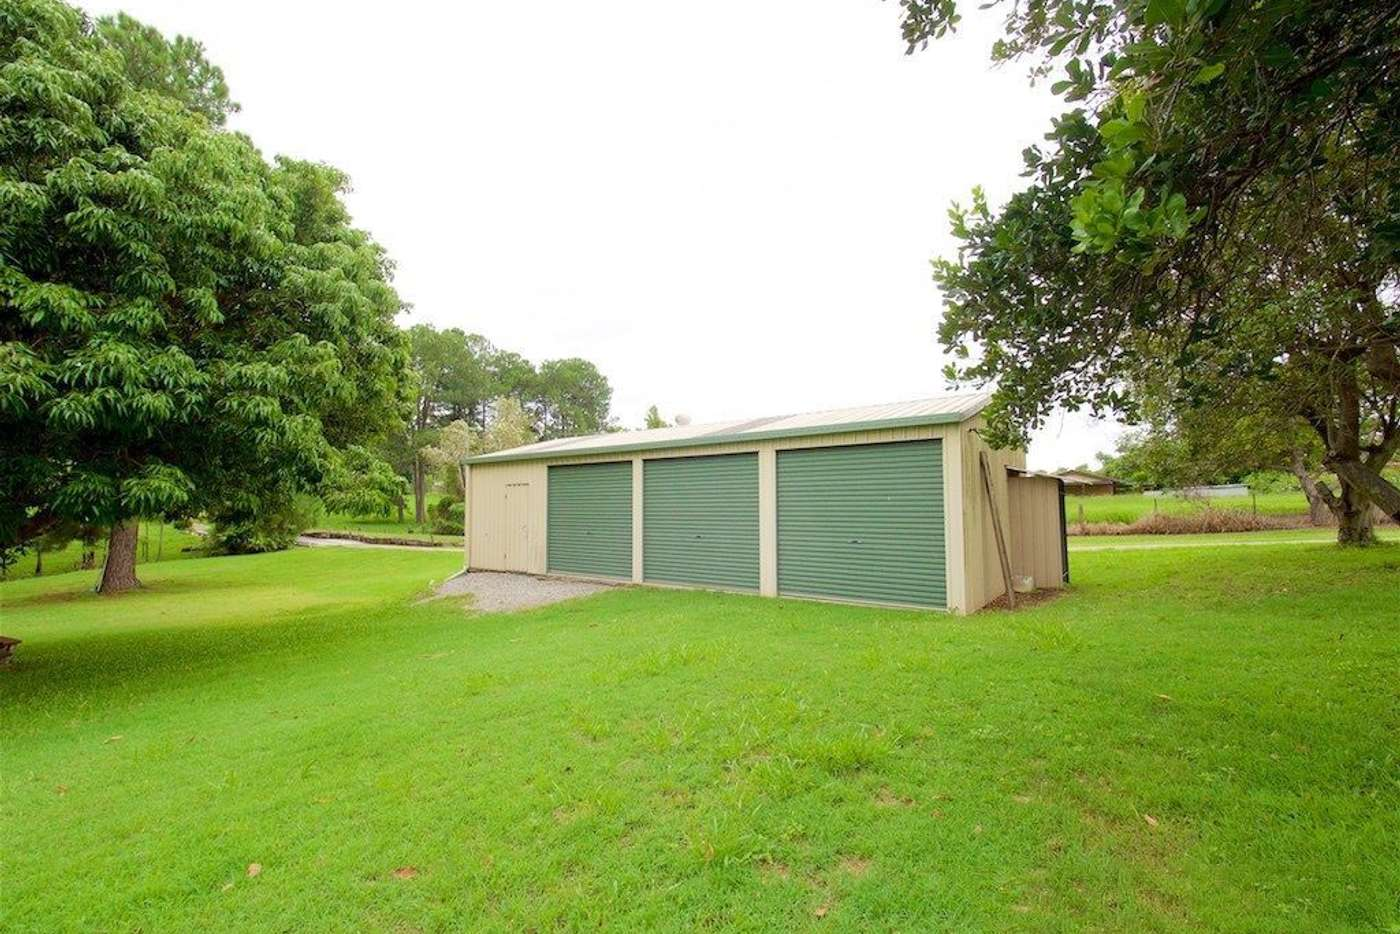 Seventh view of Homely house listing, 658 Underwood Road, Rochedale QLD 4123